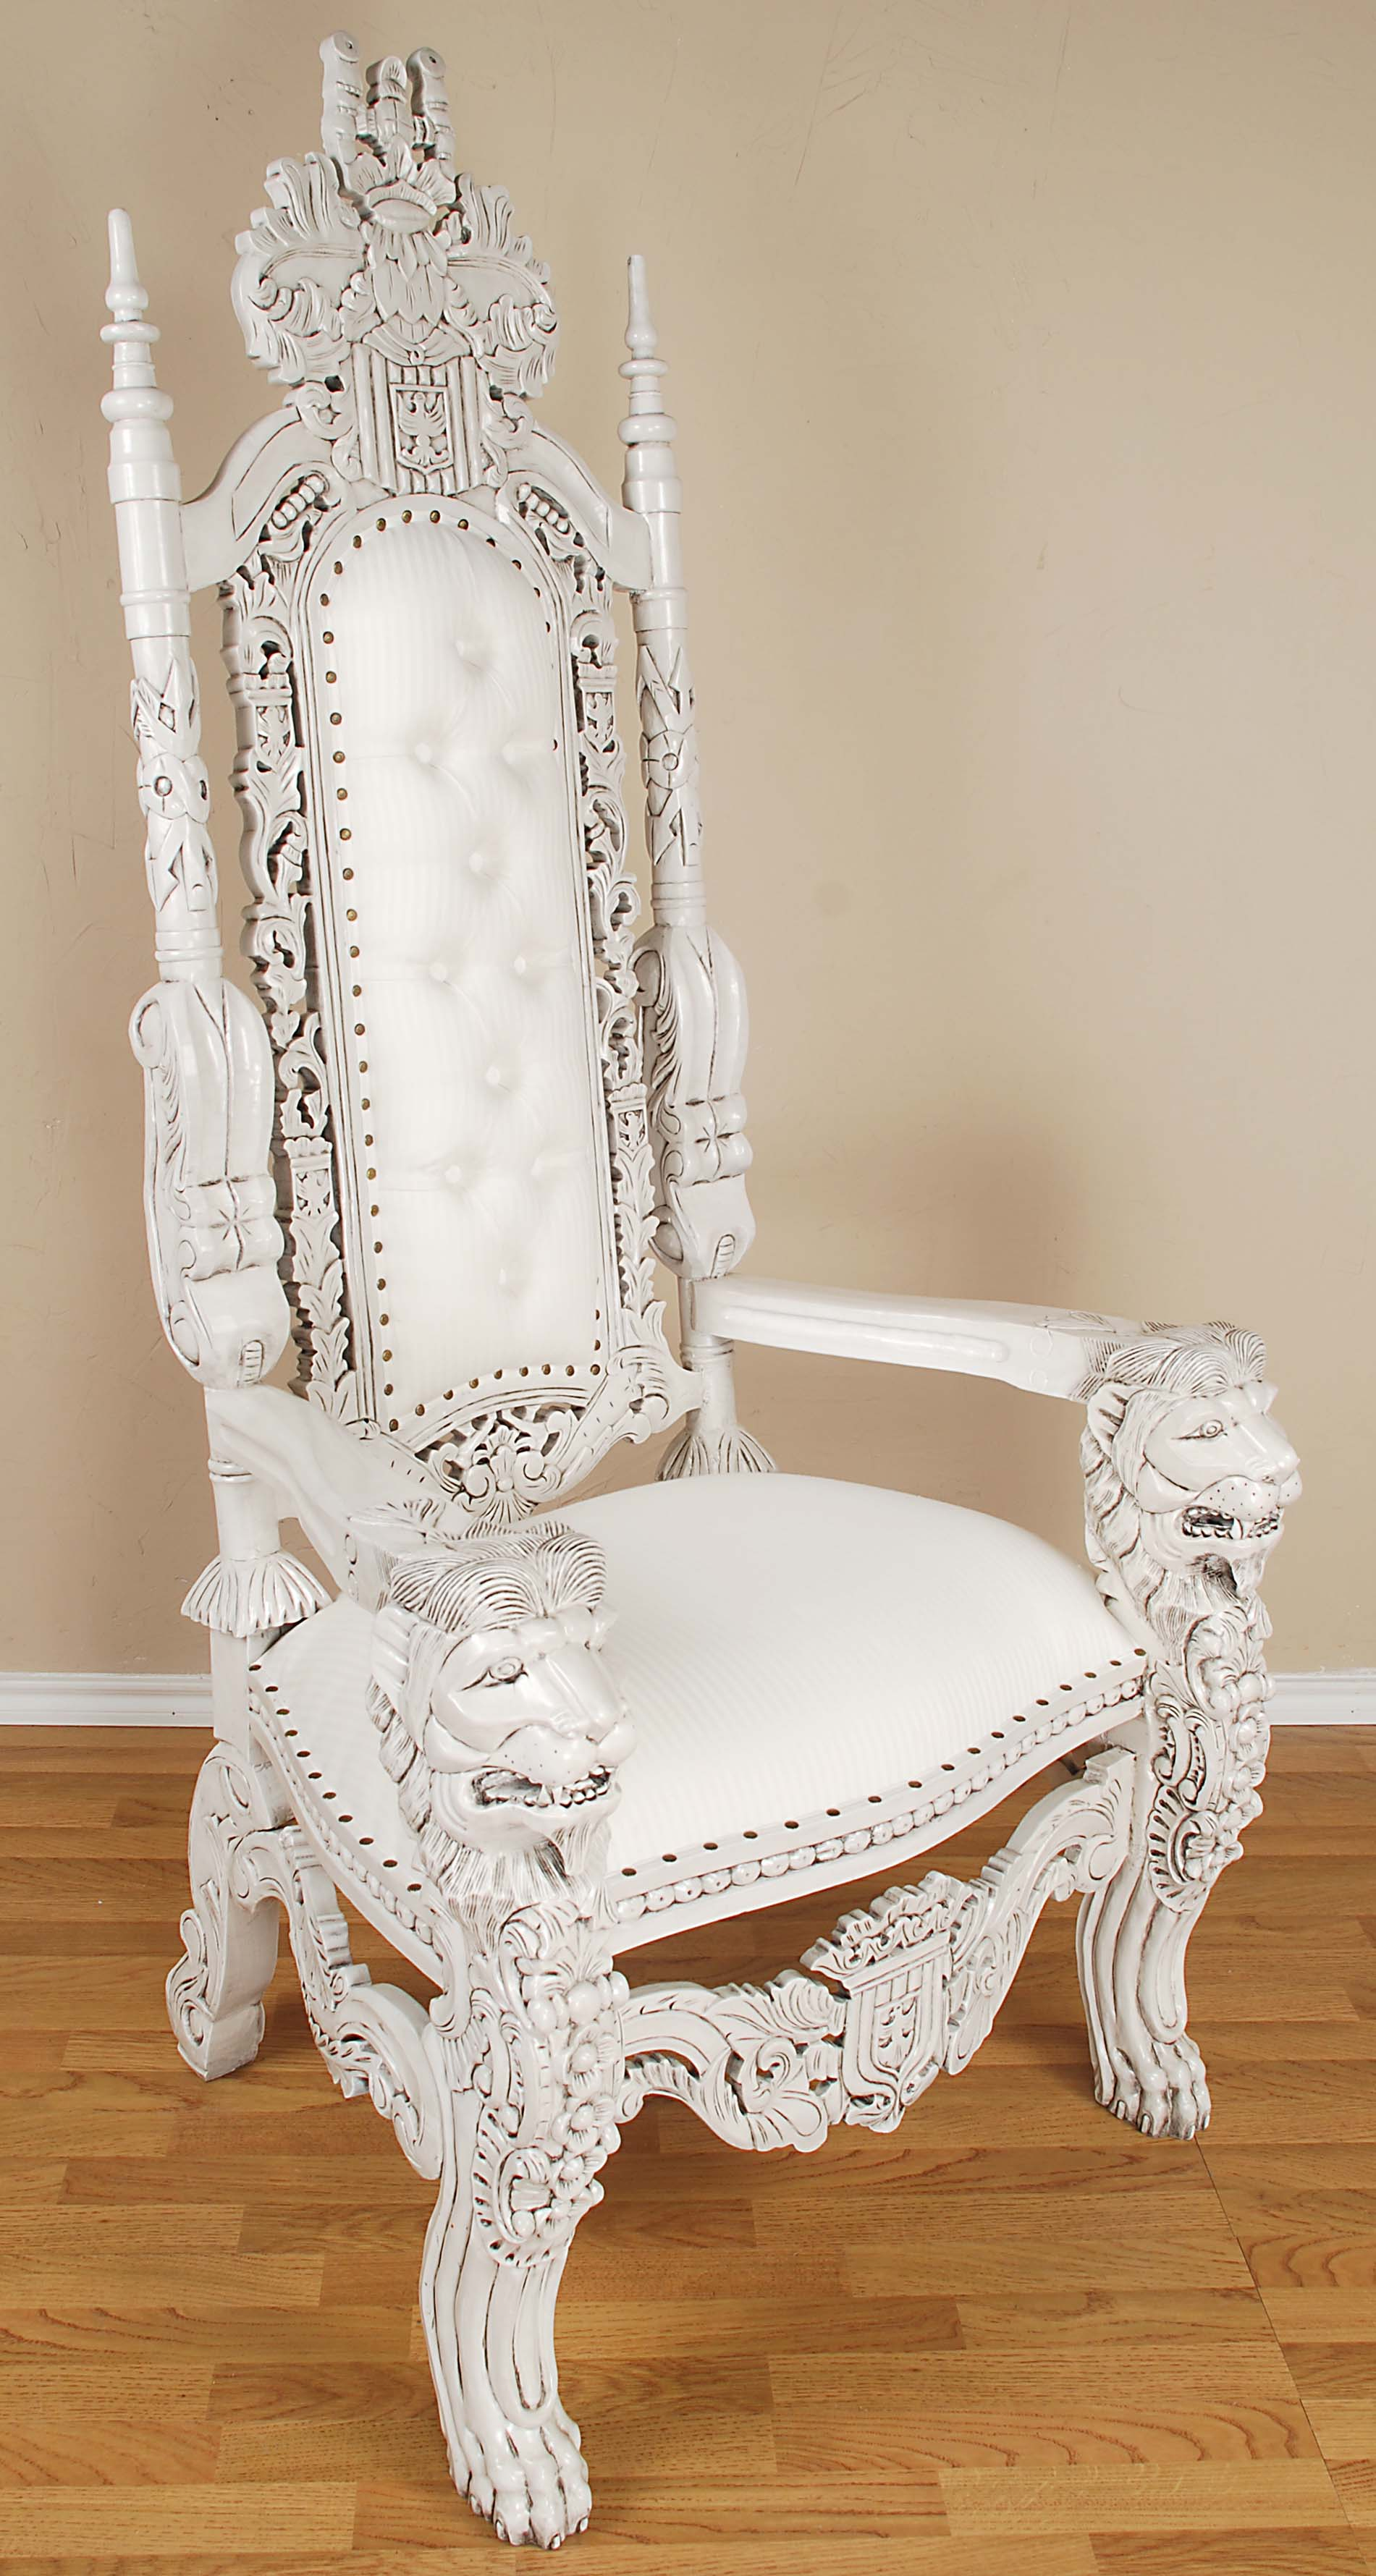 King Lion Throne Chair White